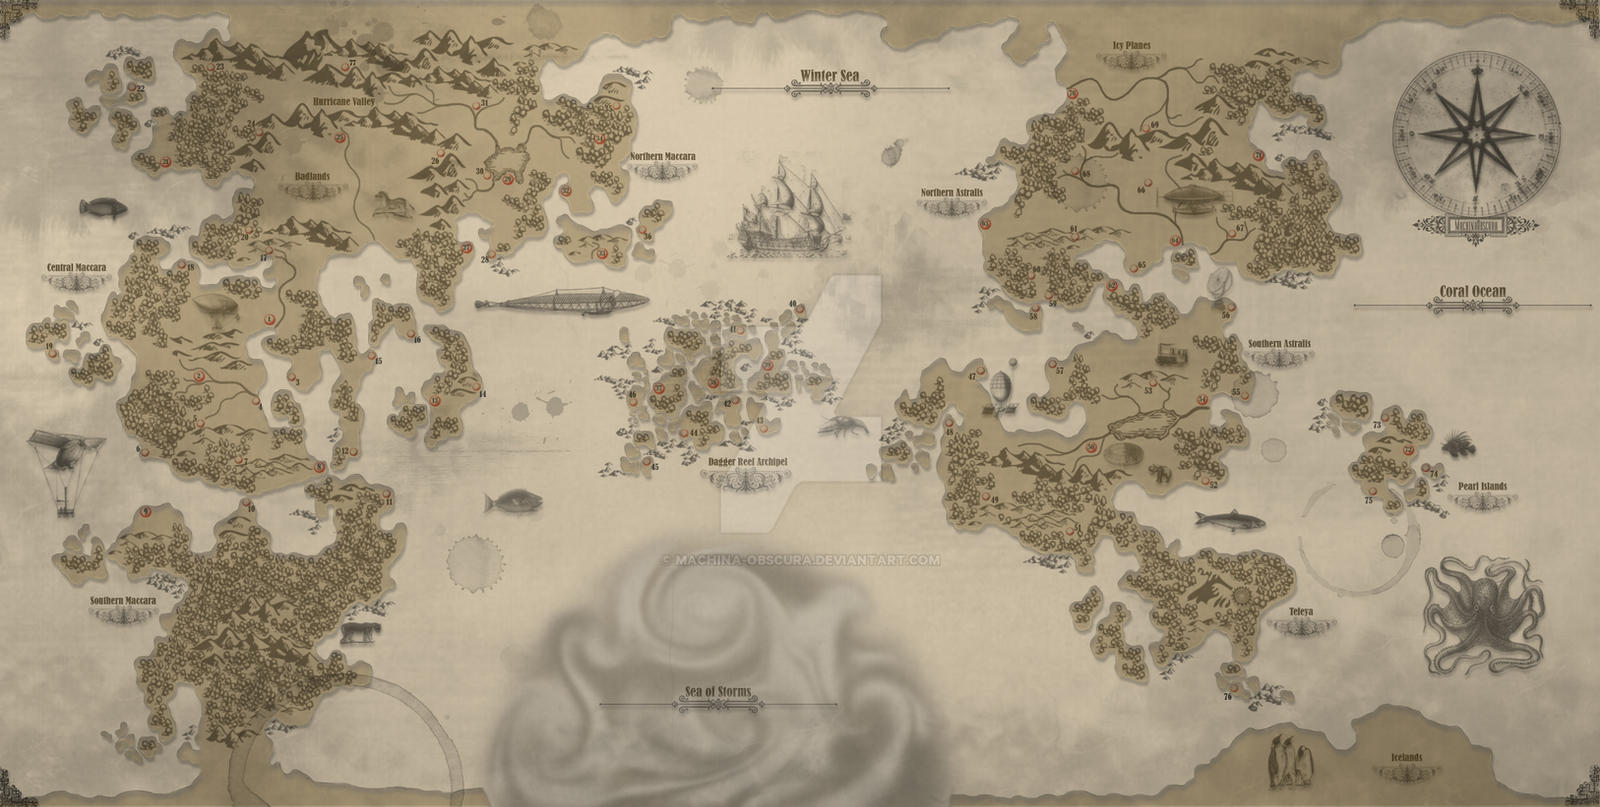 World map by machina obscura on deviantart world map by machina obscura gumiabroncs Image collections